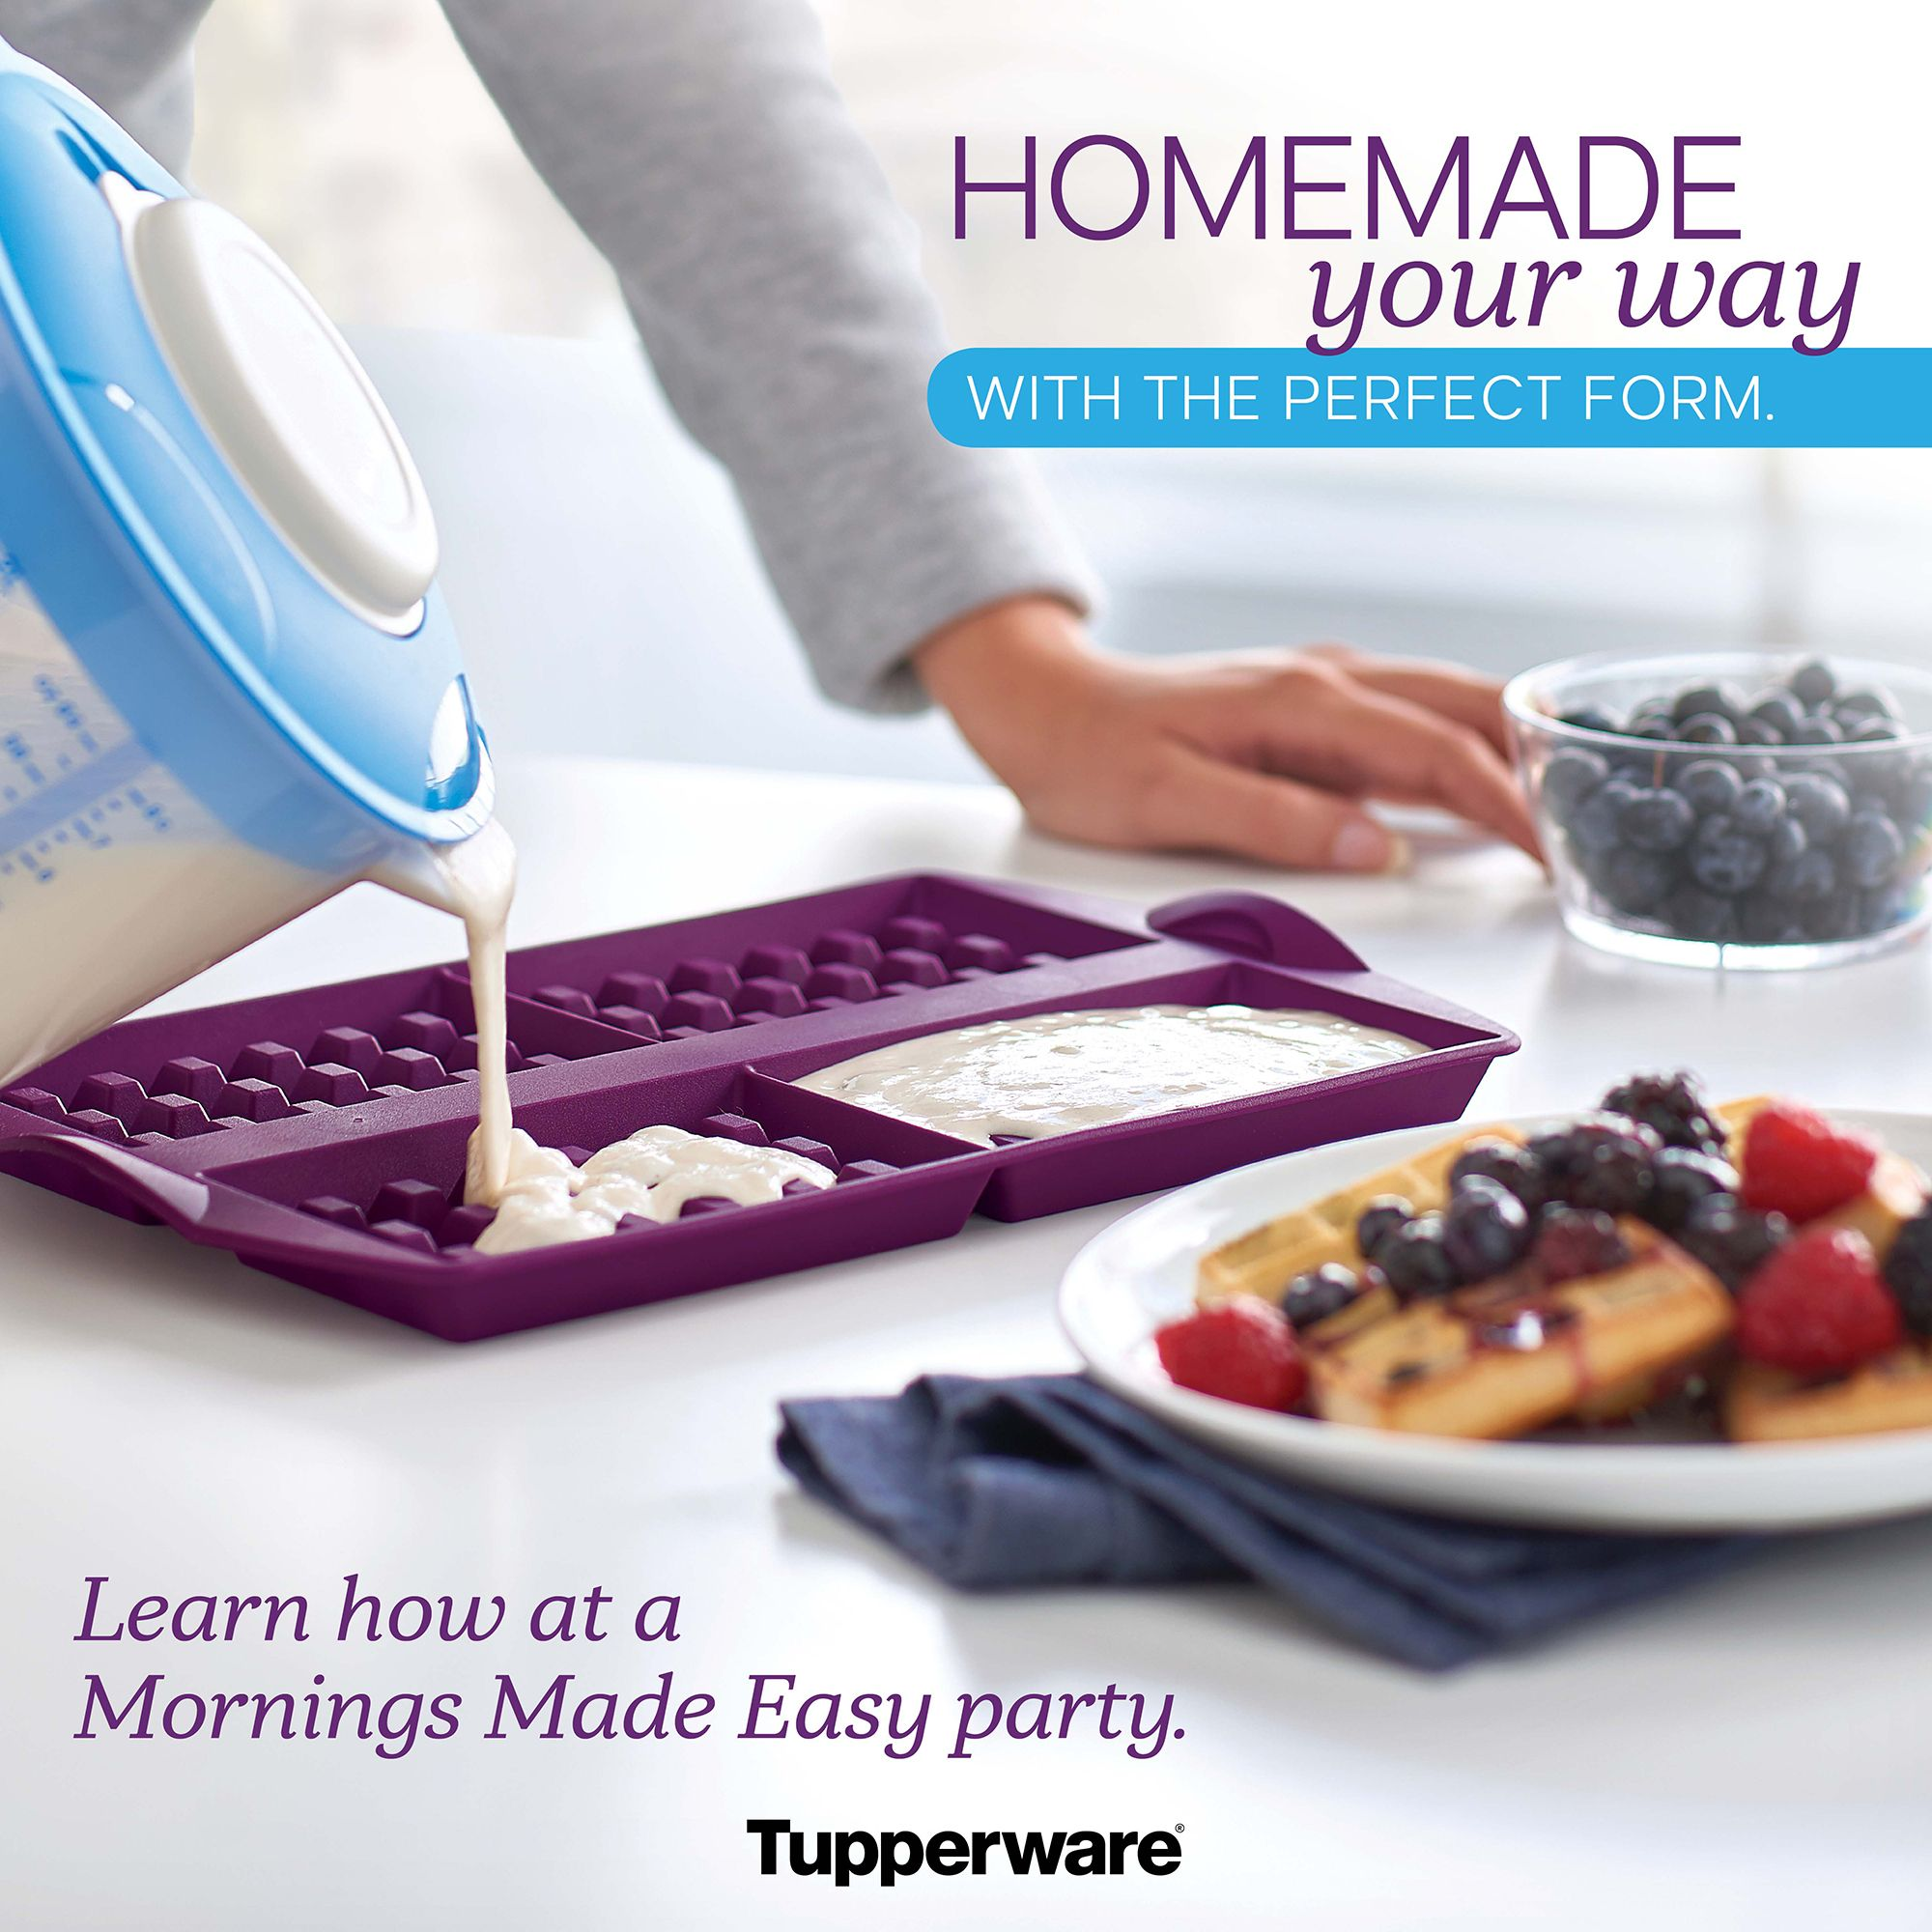 Can We Use Tupperware In Microwave Oven: Bake And Freeze Your Own Toaster Waffles. This Innovative